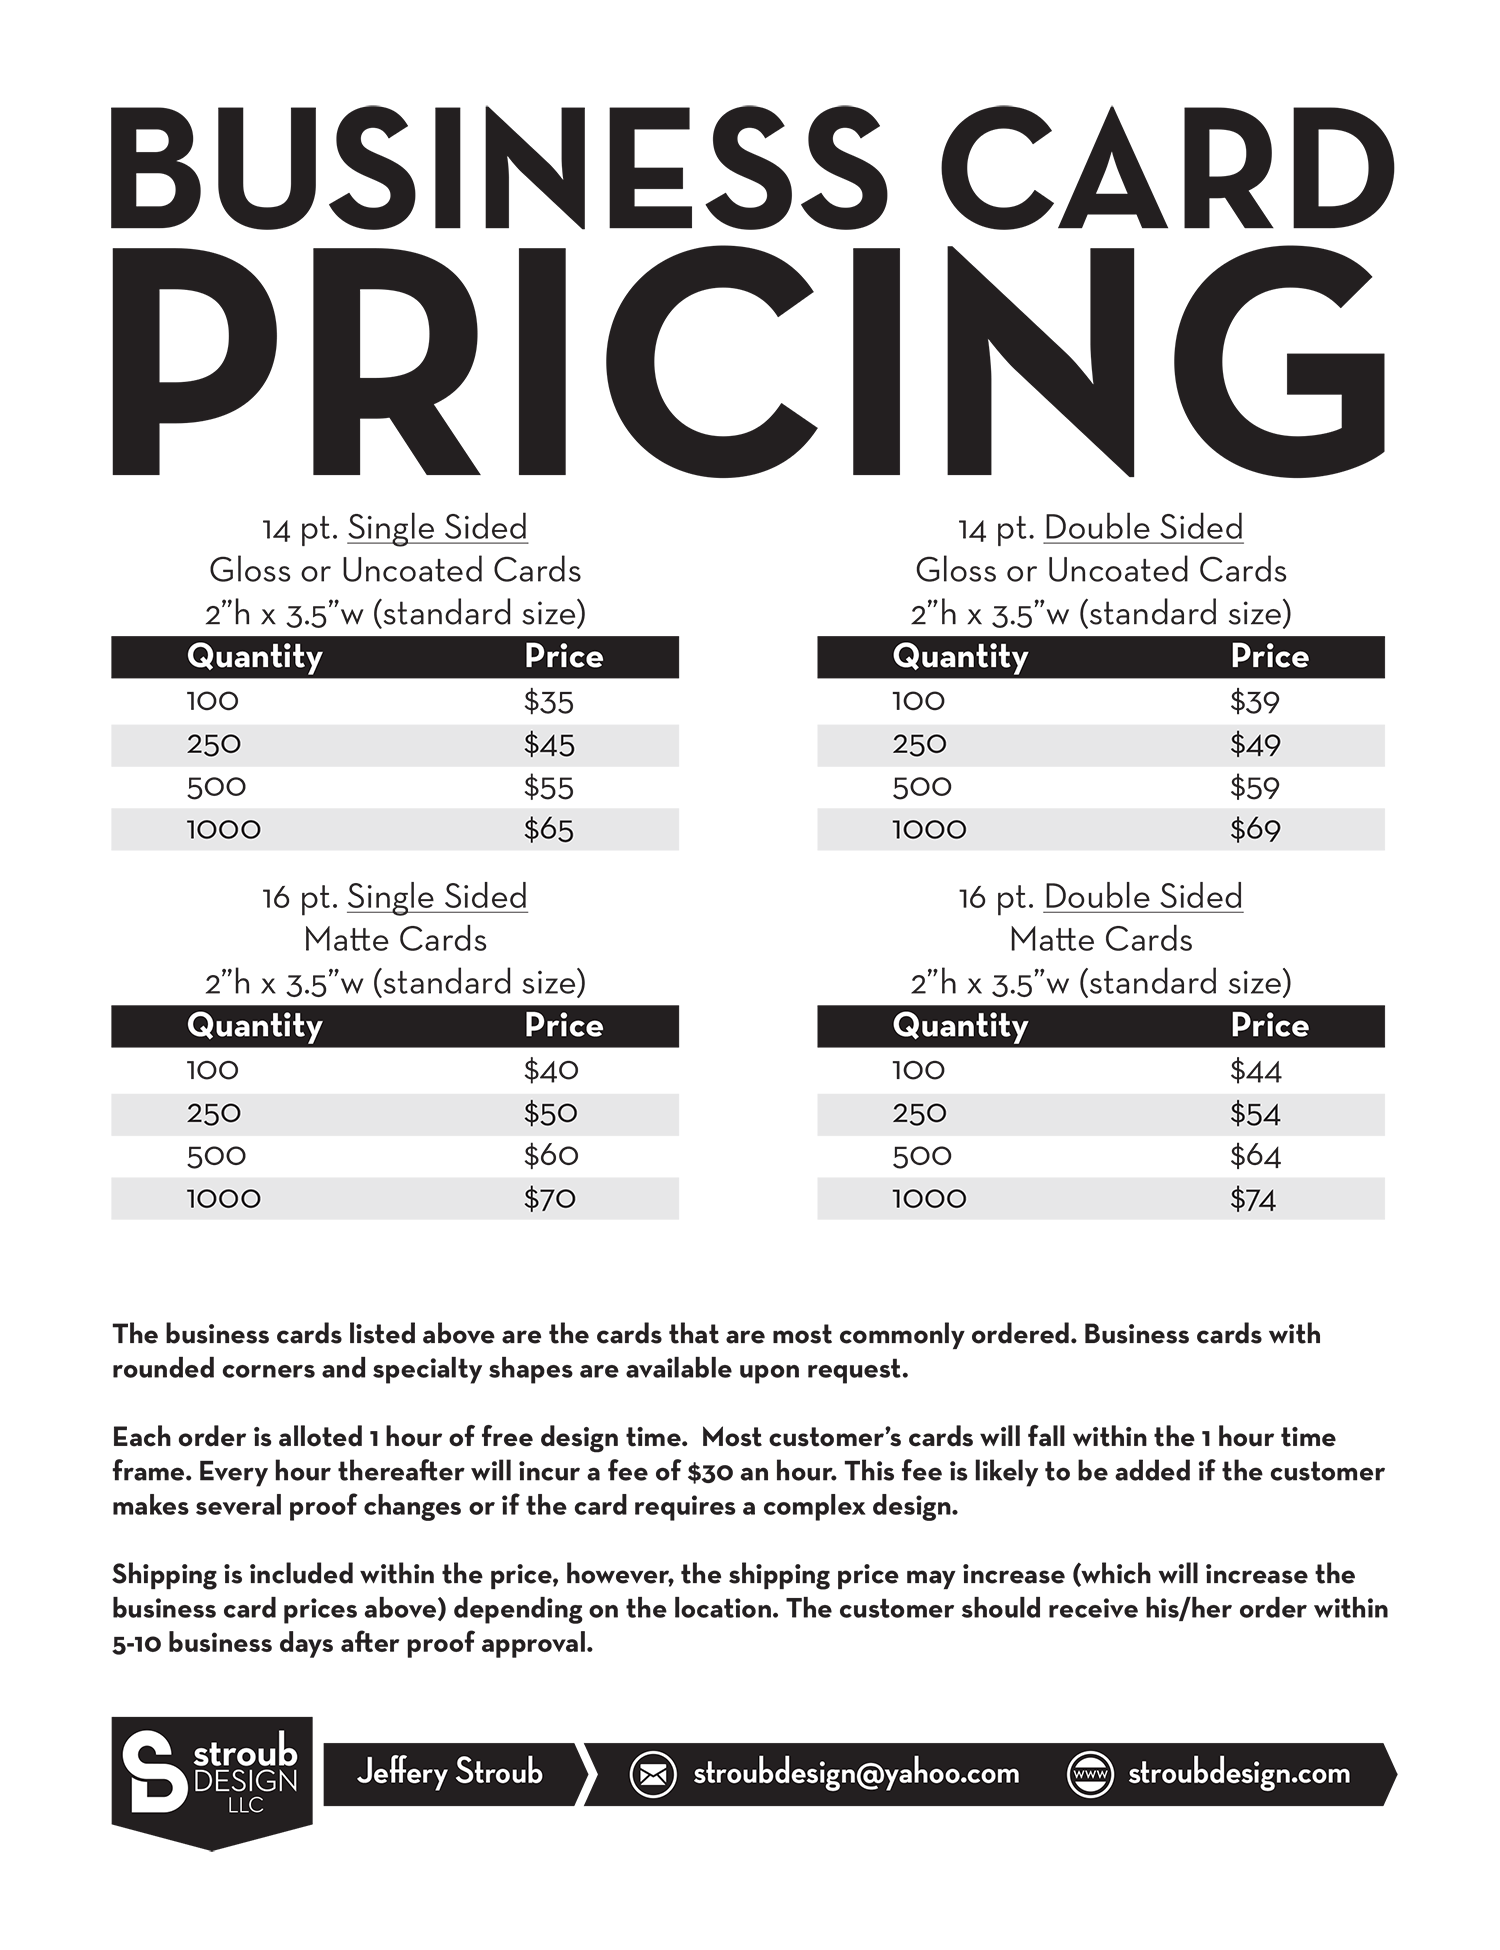 Business Card Pricing